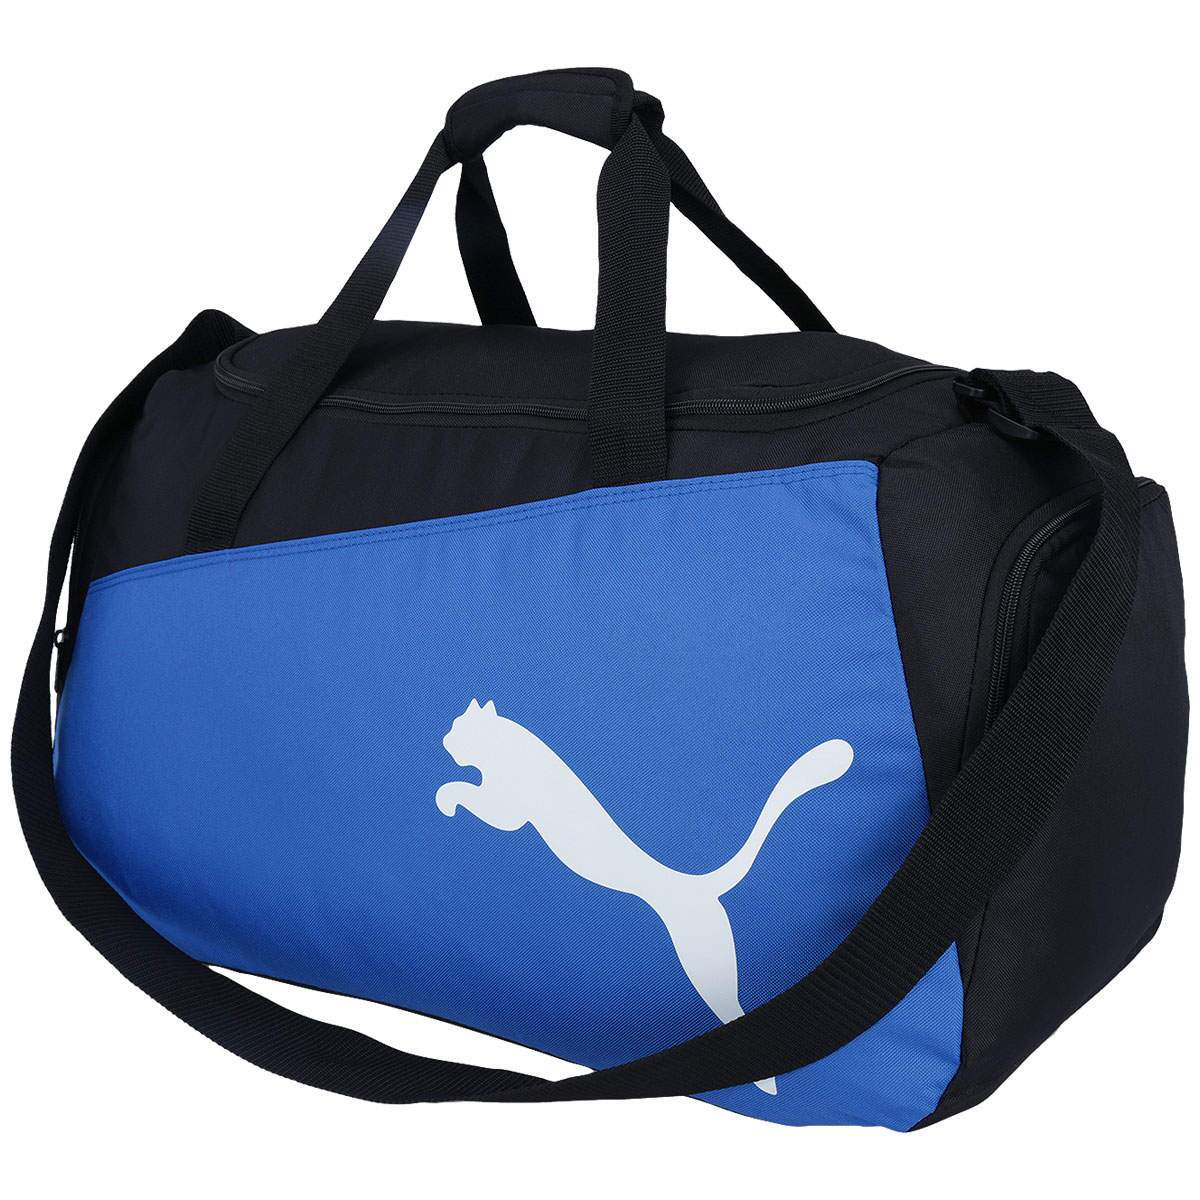 BOLSA Mala Puma Pro Training Media azul marinho/royal